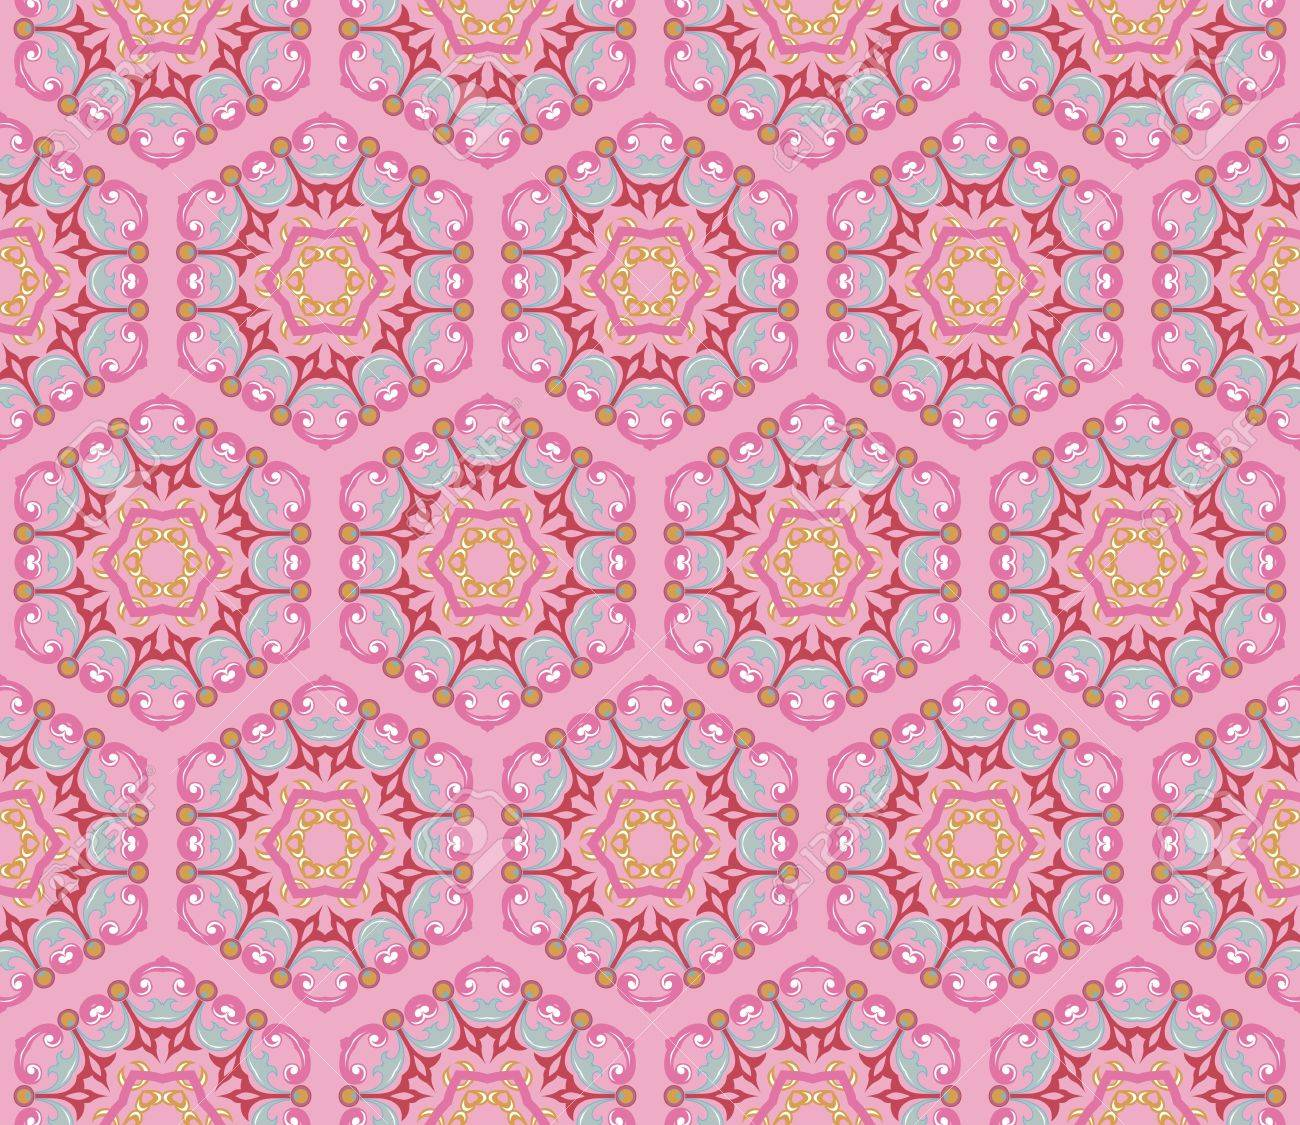 Vintage damask wallpaper pattern with abstract flowers and swirls in pink, blue, purple, brown Stock Vector - 12759622